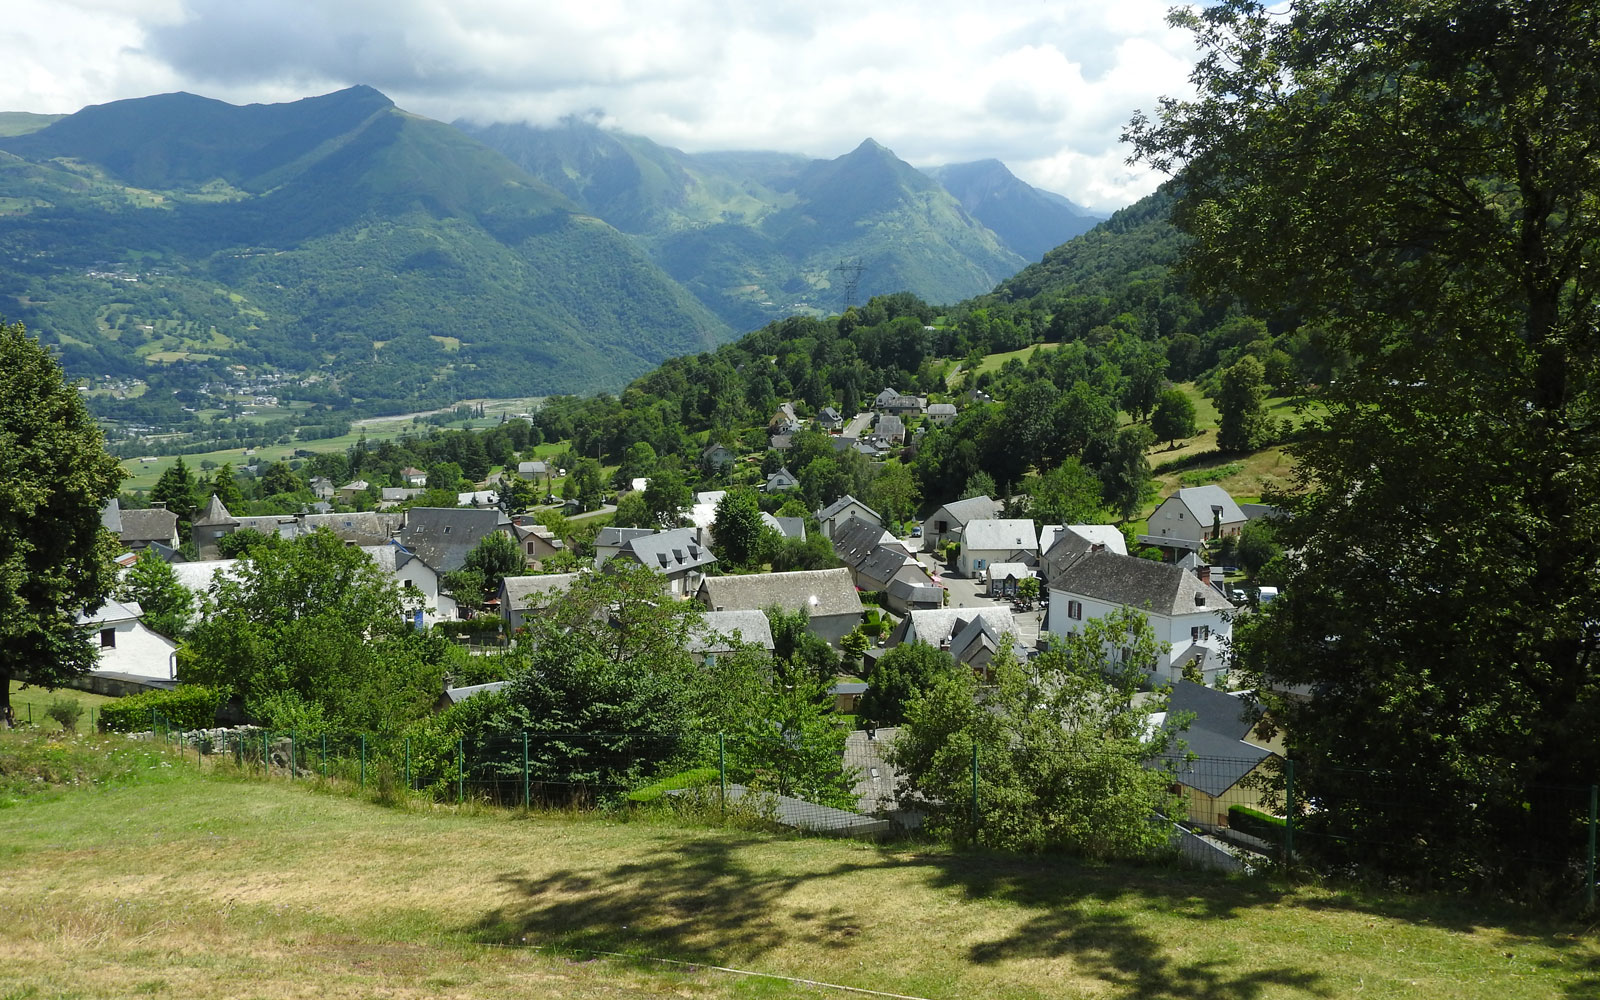 In Arcizans-Avant, a charming Pyrenean village